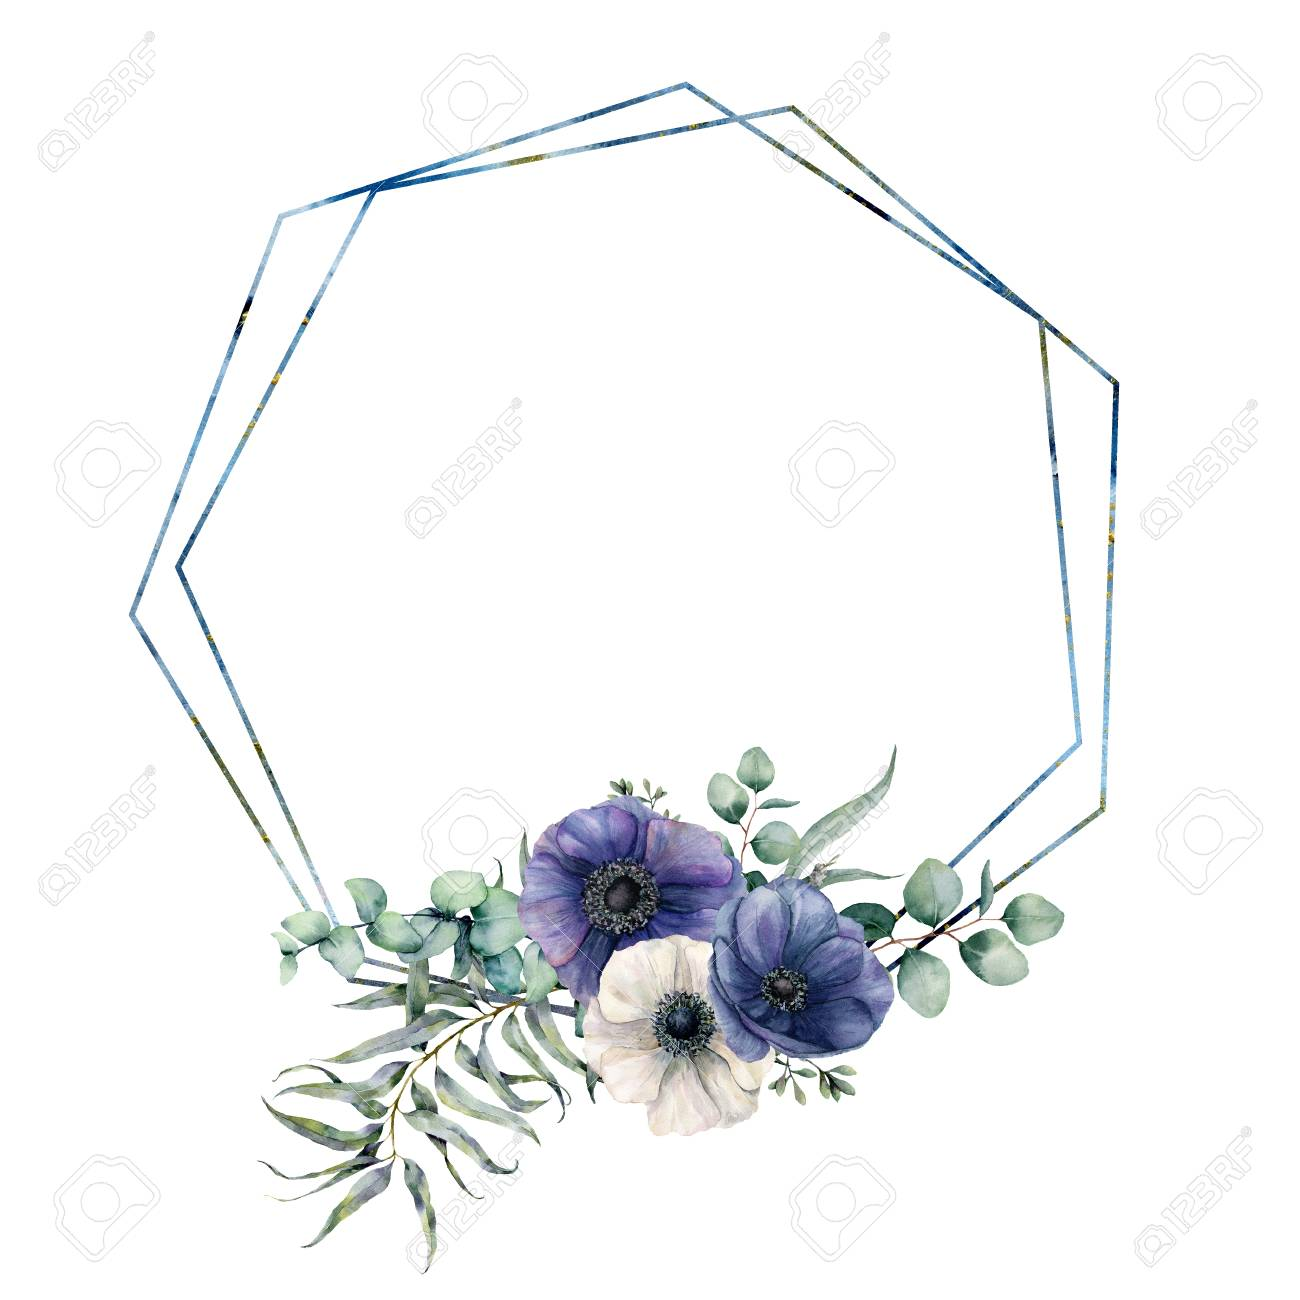 Watercolor hexagonal frame with blue anemone bouquet. Hand drawn modern floral label with eucalyptus leaves and branches, flowers isolated on white background. Greeting template for design, print - 116175062